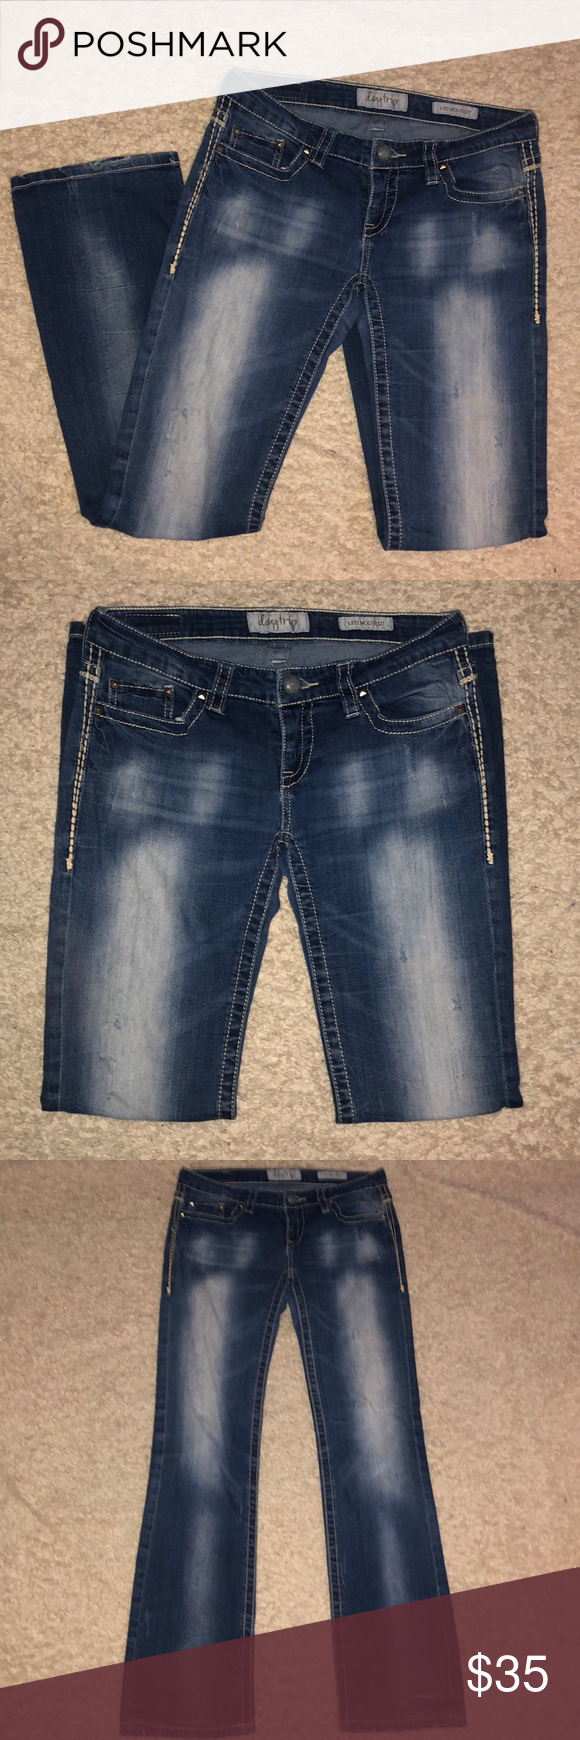 5856702d377 DayTrip Jeans Leo Bootcut Distressed Sz 29 Buckle DayTrip Jeans Leo Bootcut  Distressed Size 29 x 32 Rise 7 1/2 Inseam 32 Smoke free home if you have  any ...